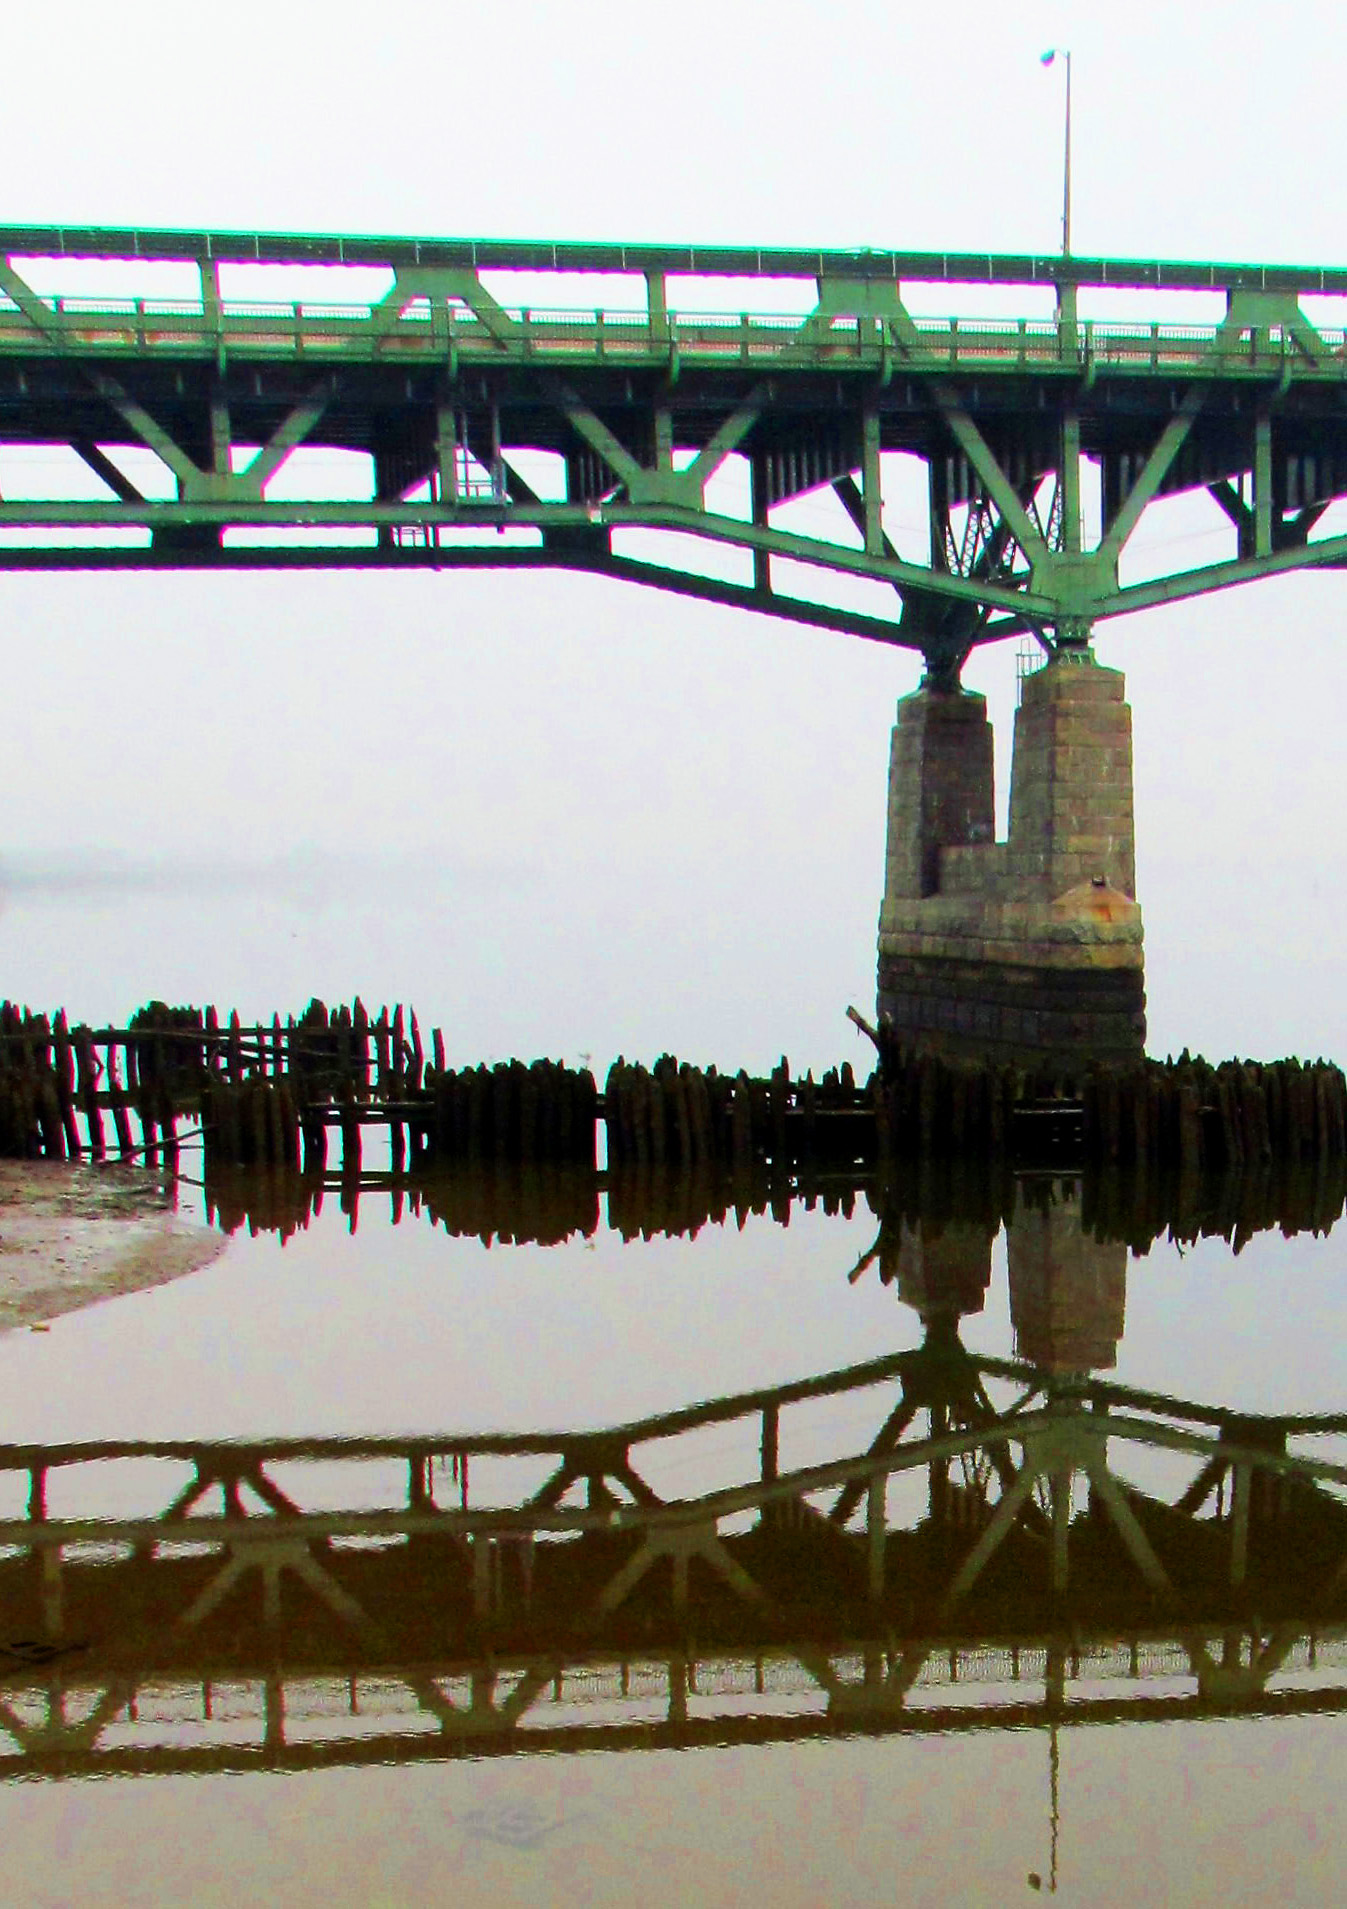 Tacony Palmyra Bridge Foundation & Span Reflections